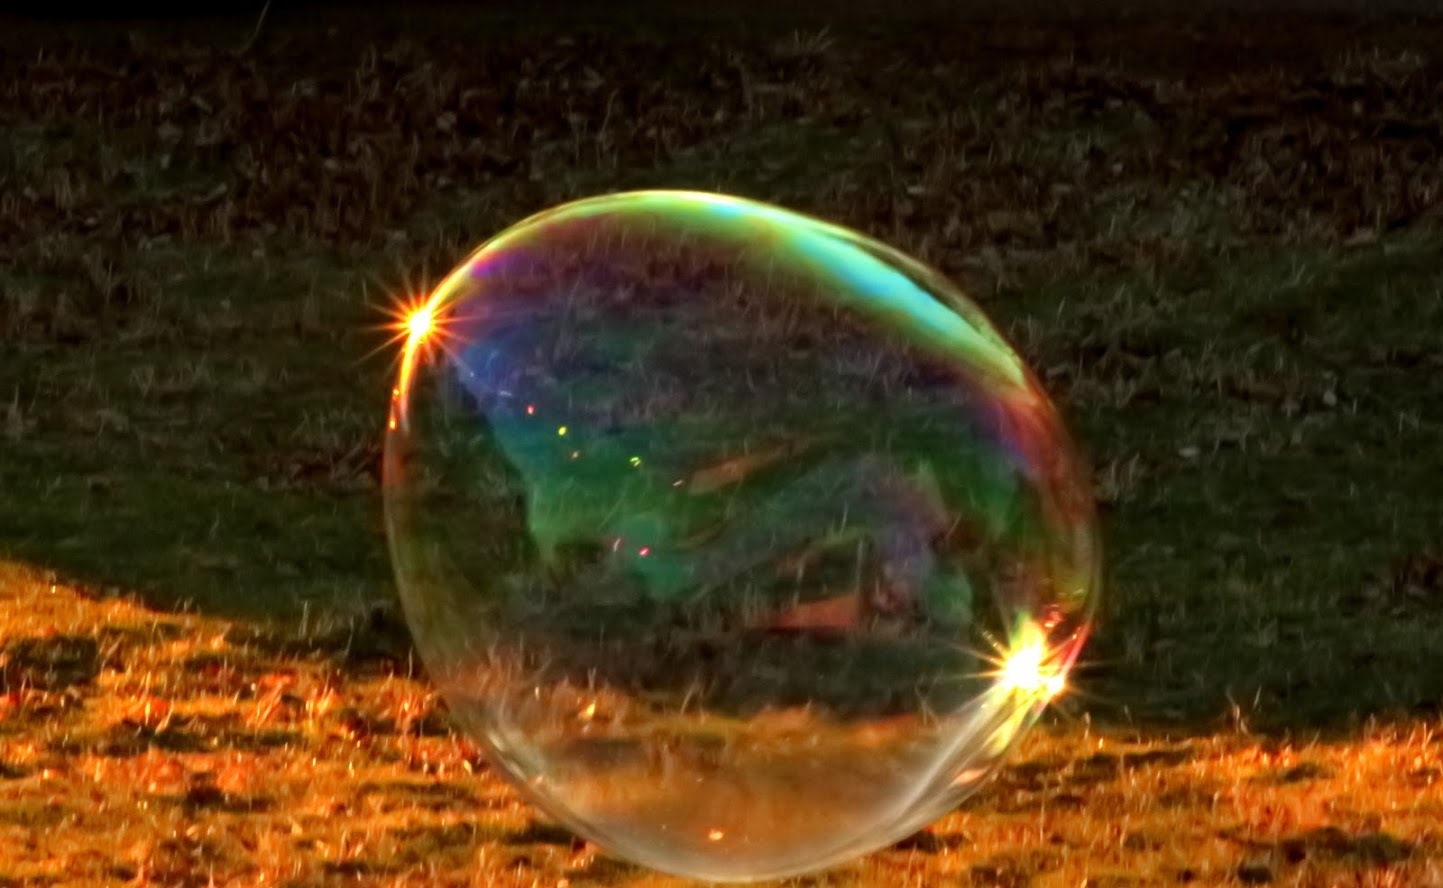 The Amazing Bubbles II by Laurie Puglia